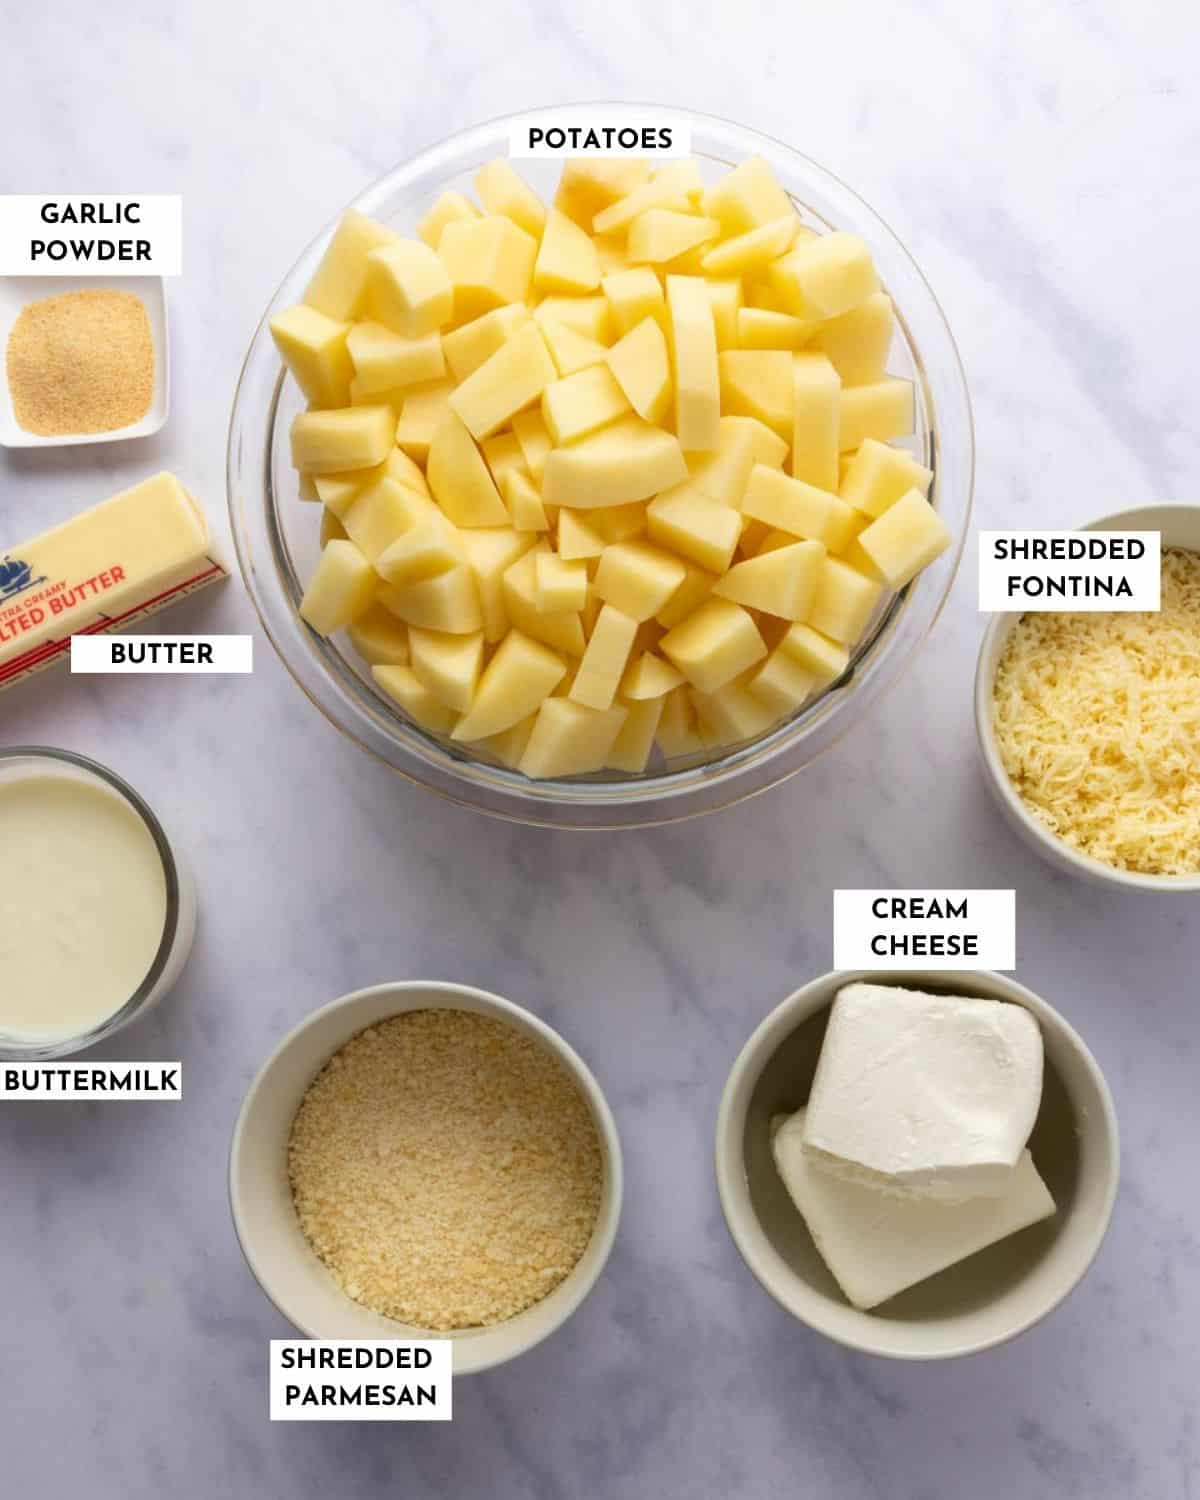 Labeled picture of ingredients for cheesy mashed potatoes - refer to recipe card for details!